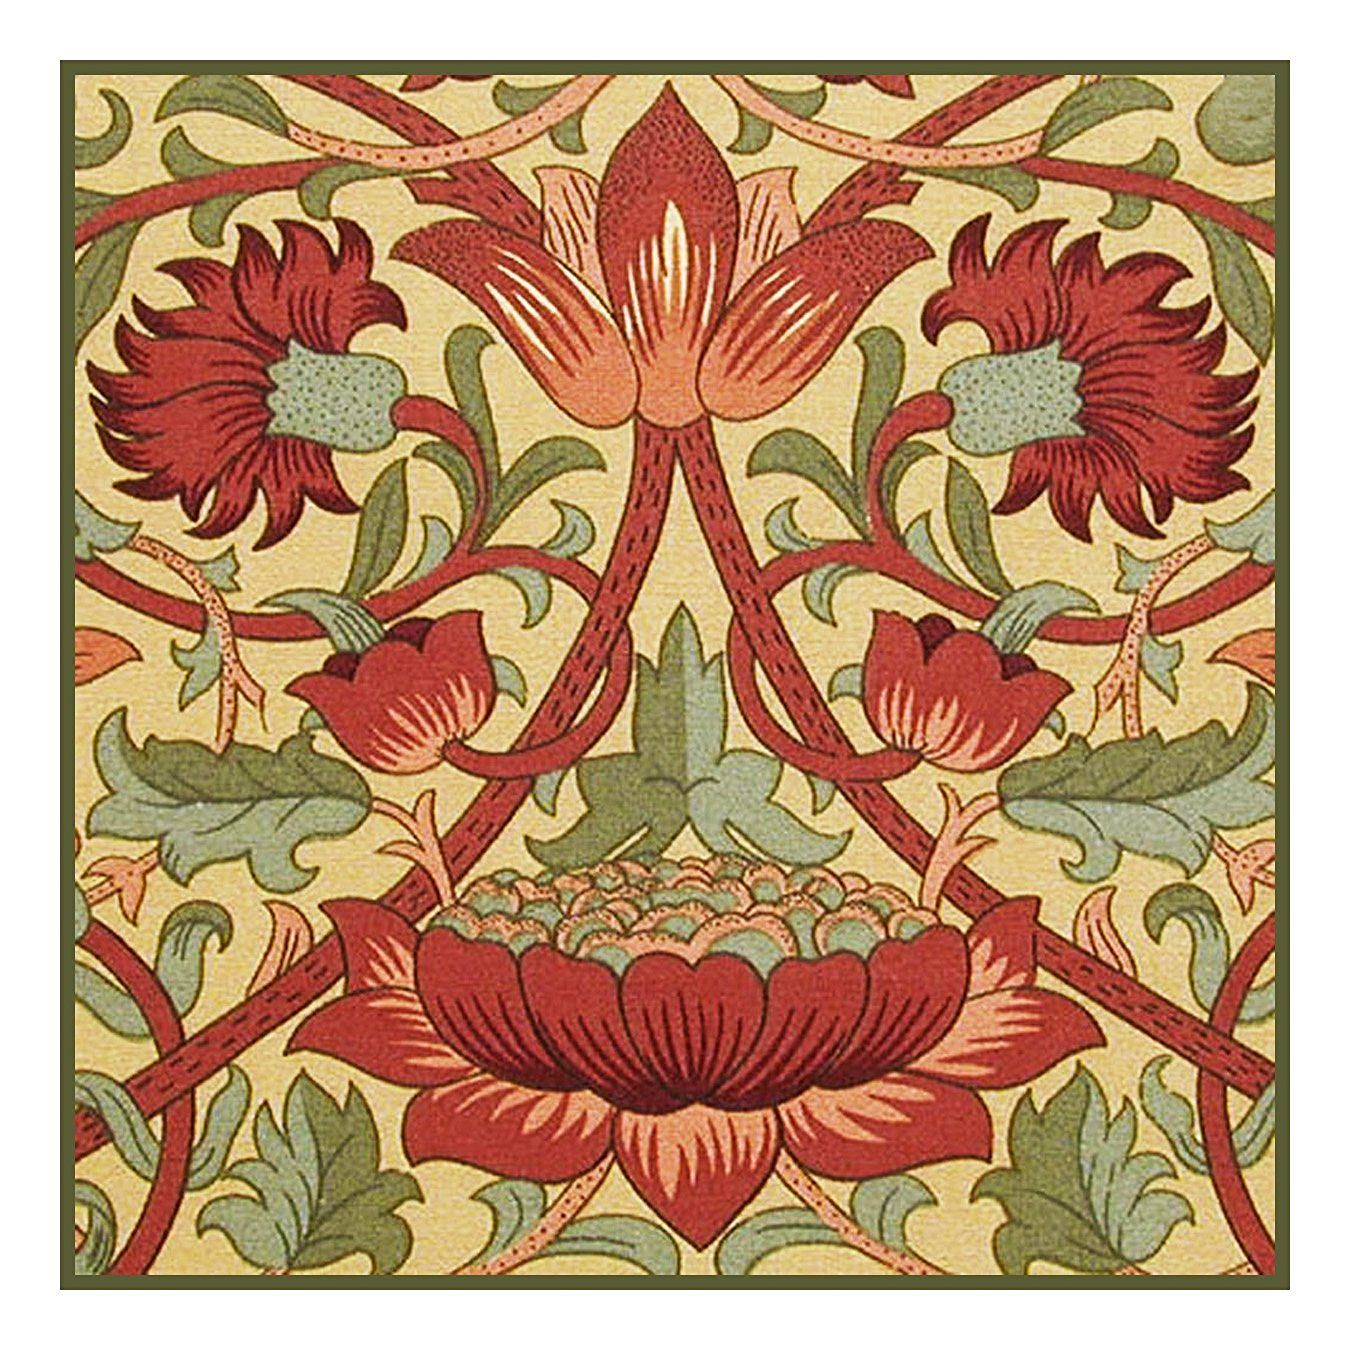 Teppiche Jugendstil Amazon Loden In Earthtones By William Morris Counted Cross